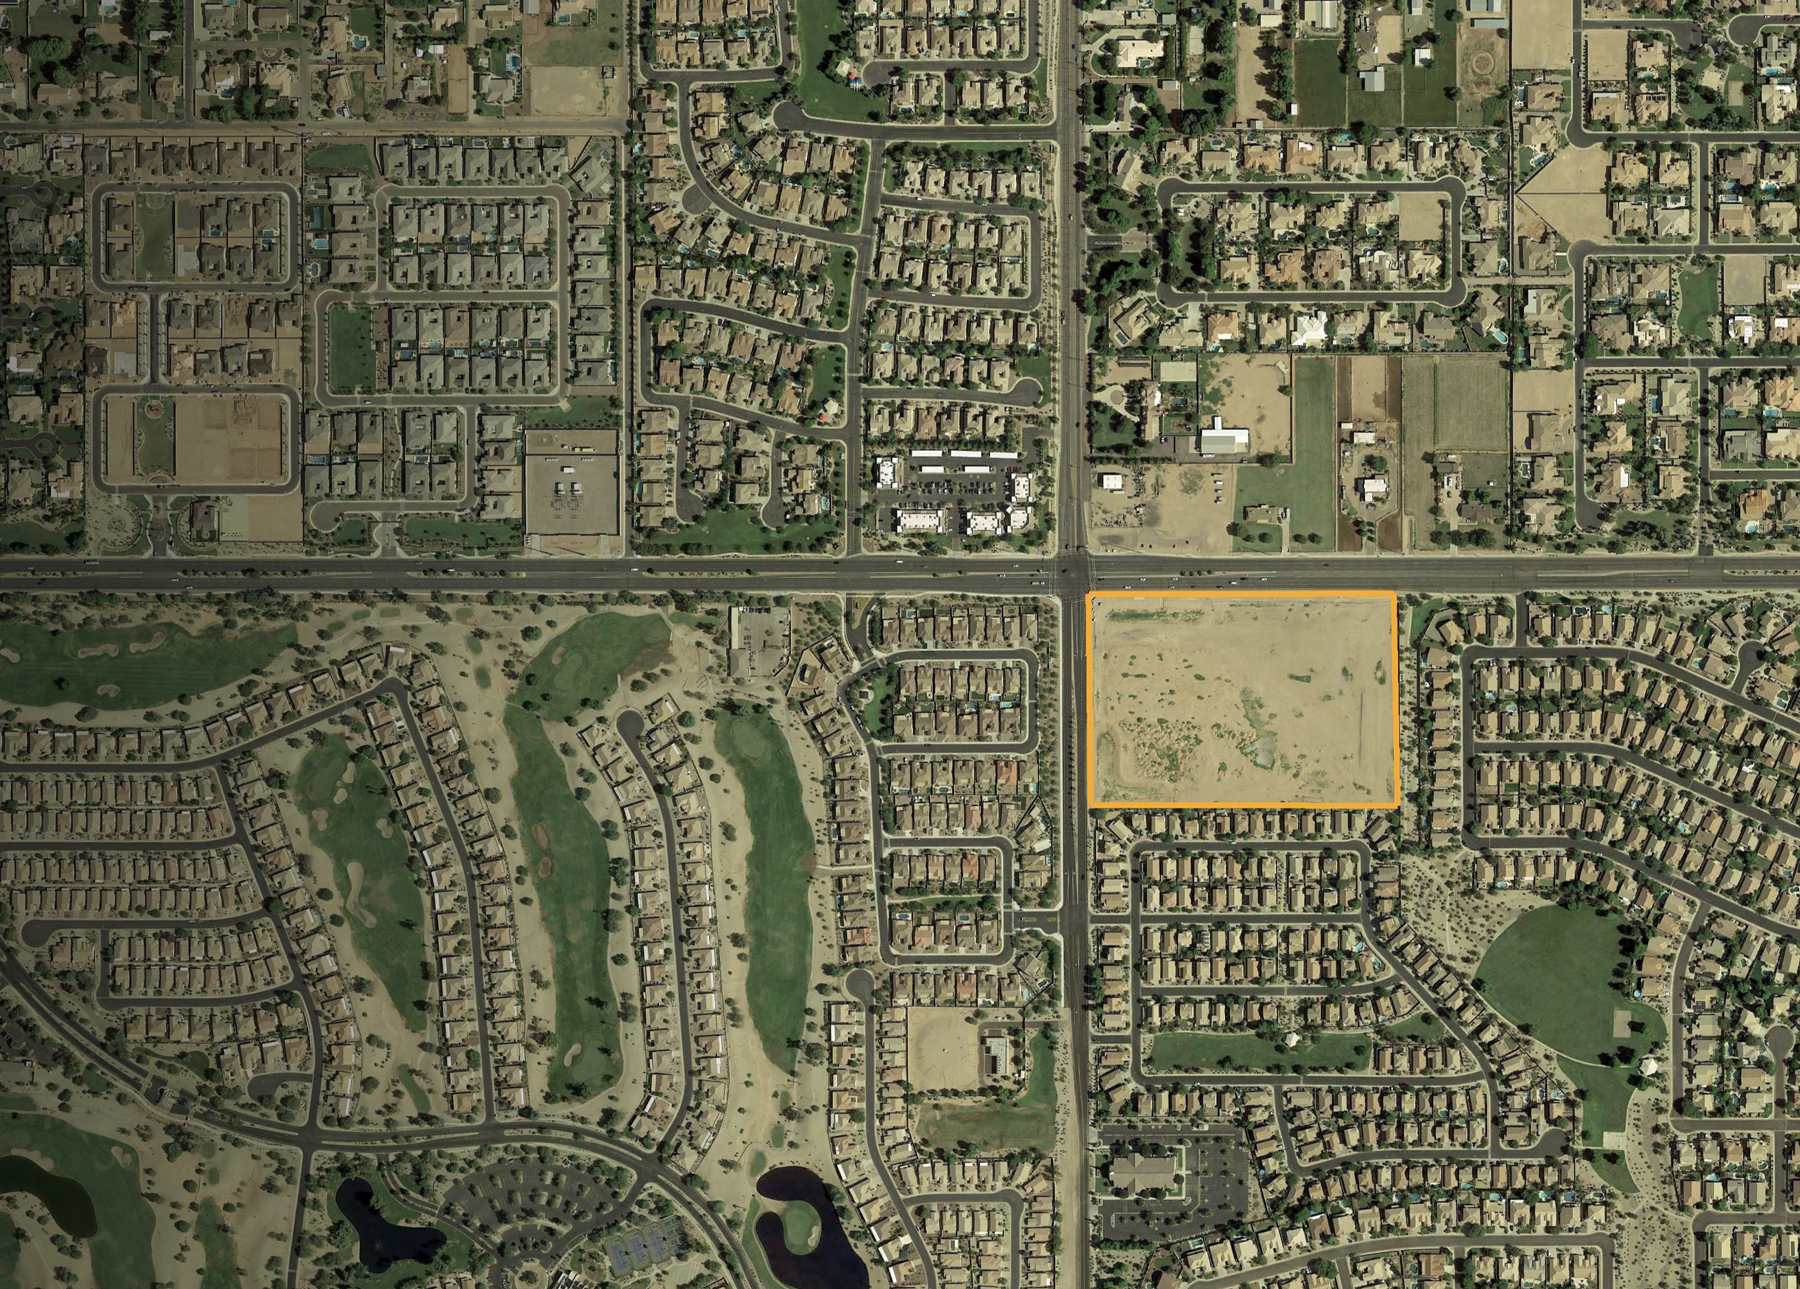 Lindsay Road and Riggs Road (in escrow)